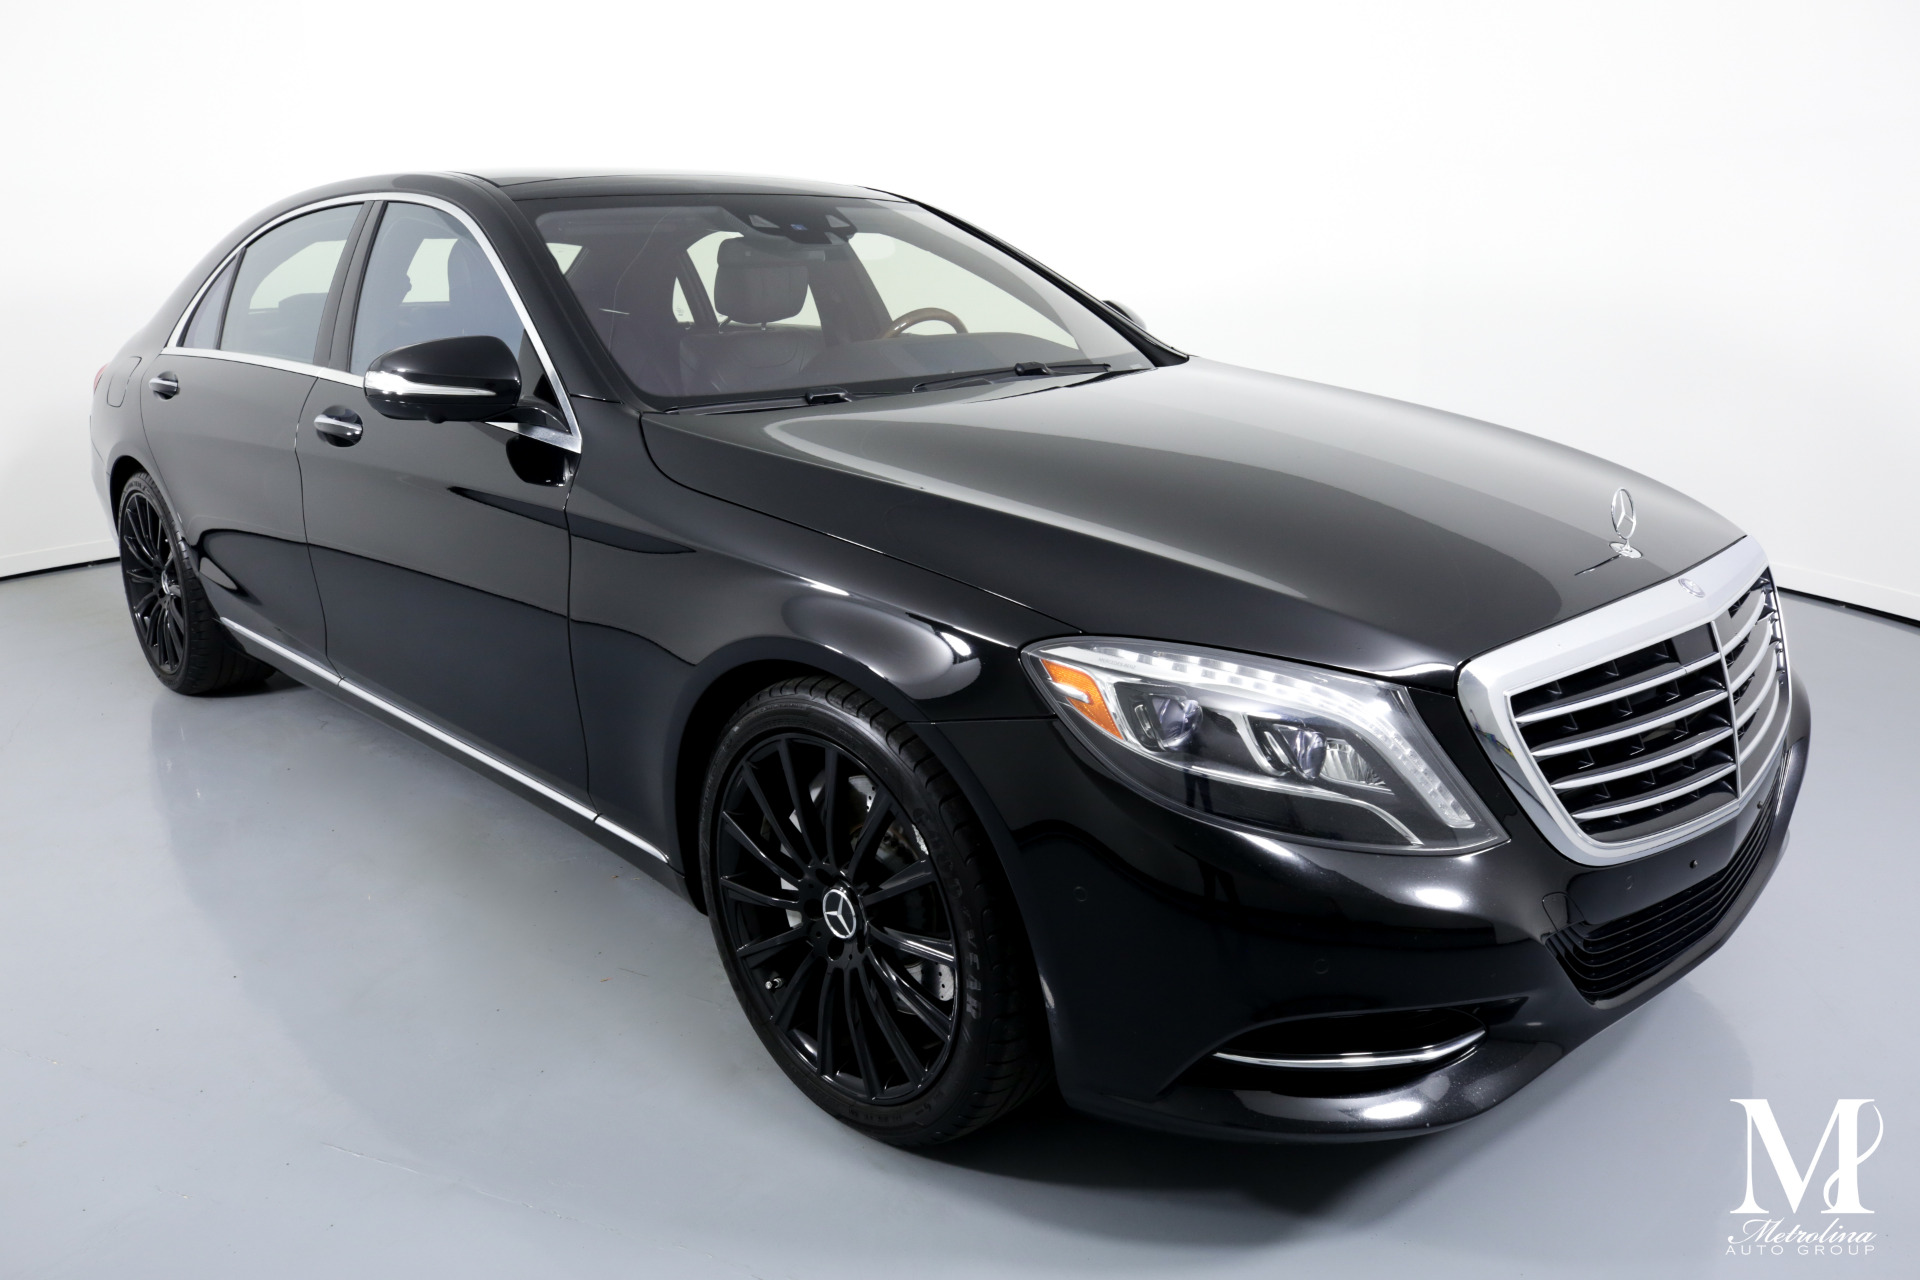 Used 2014 Mercedes-Benz S-Class S 550 for sale $38,456 at Metrolina Auto Group in Charlotte NC 28217 - 2